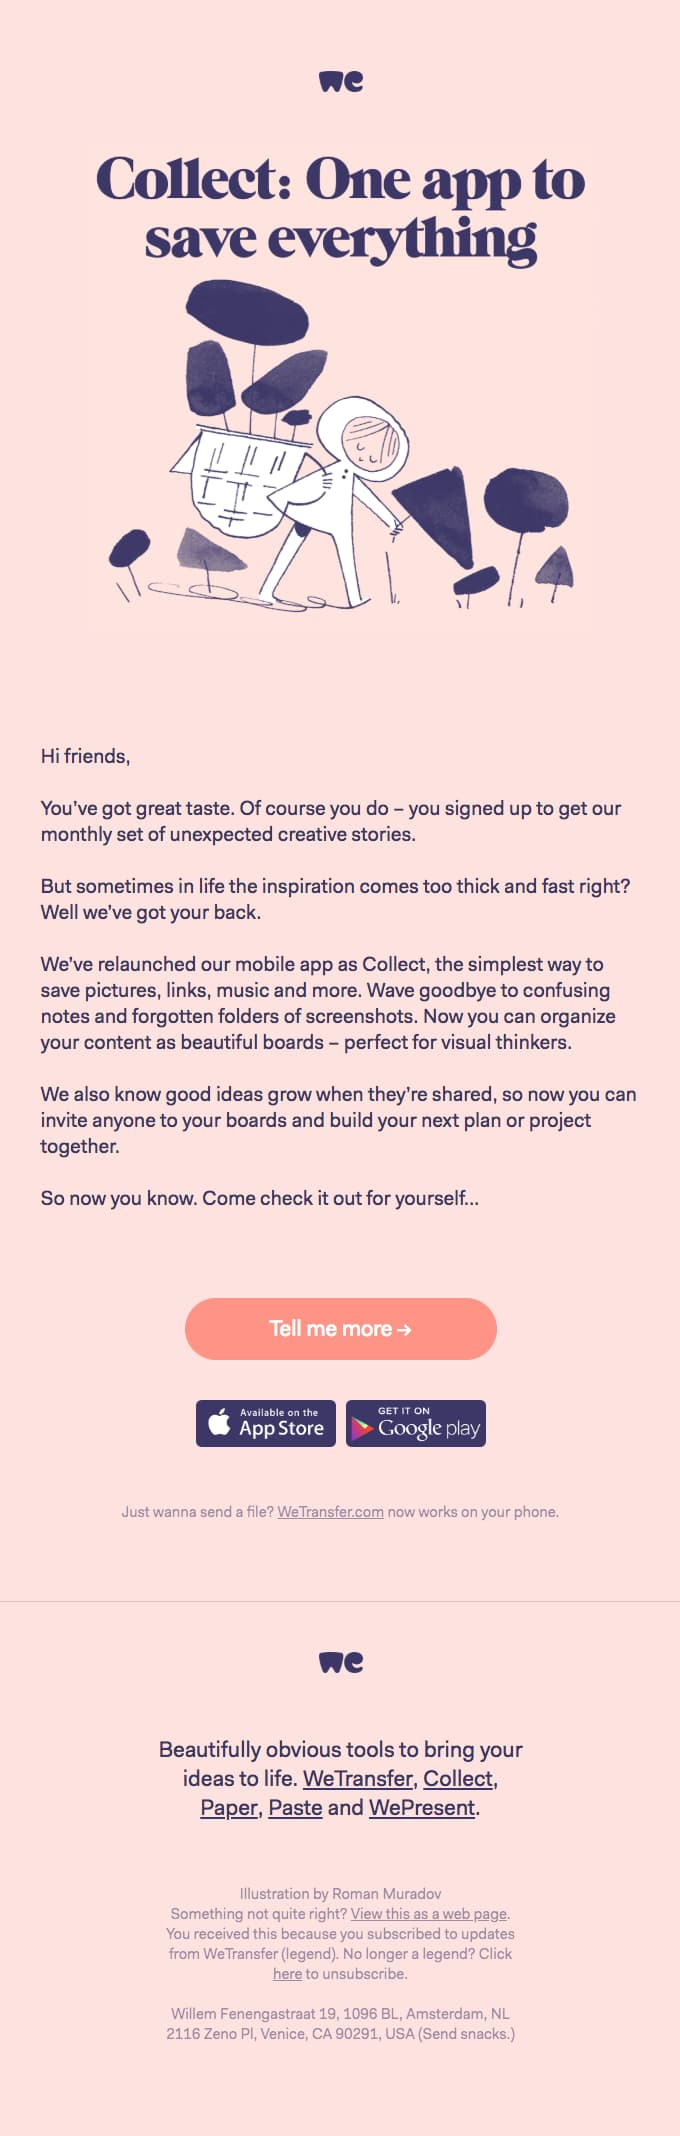 product launch announcement email example from wetransfer collect app